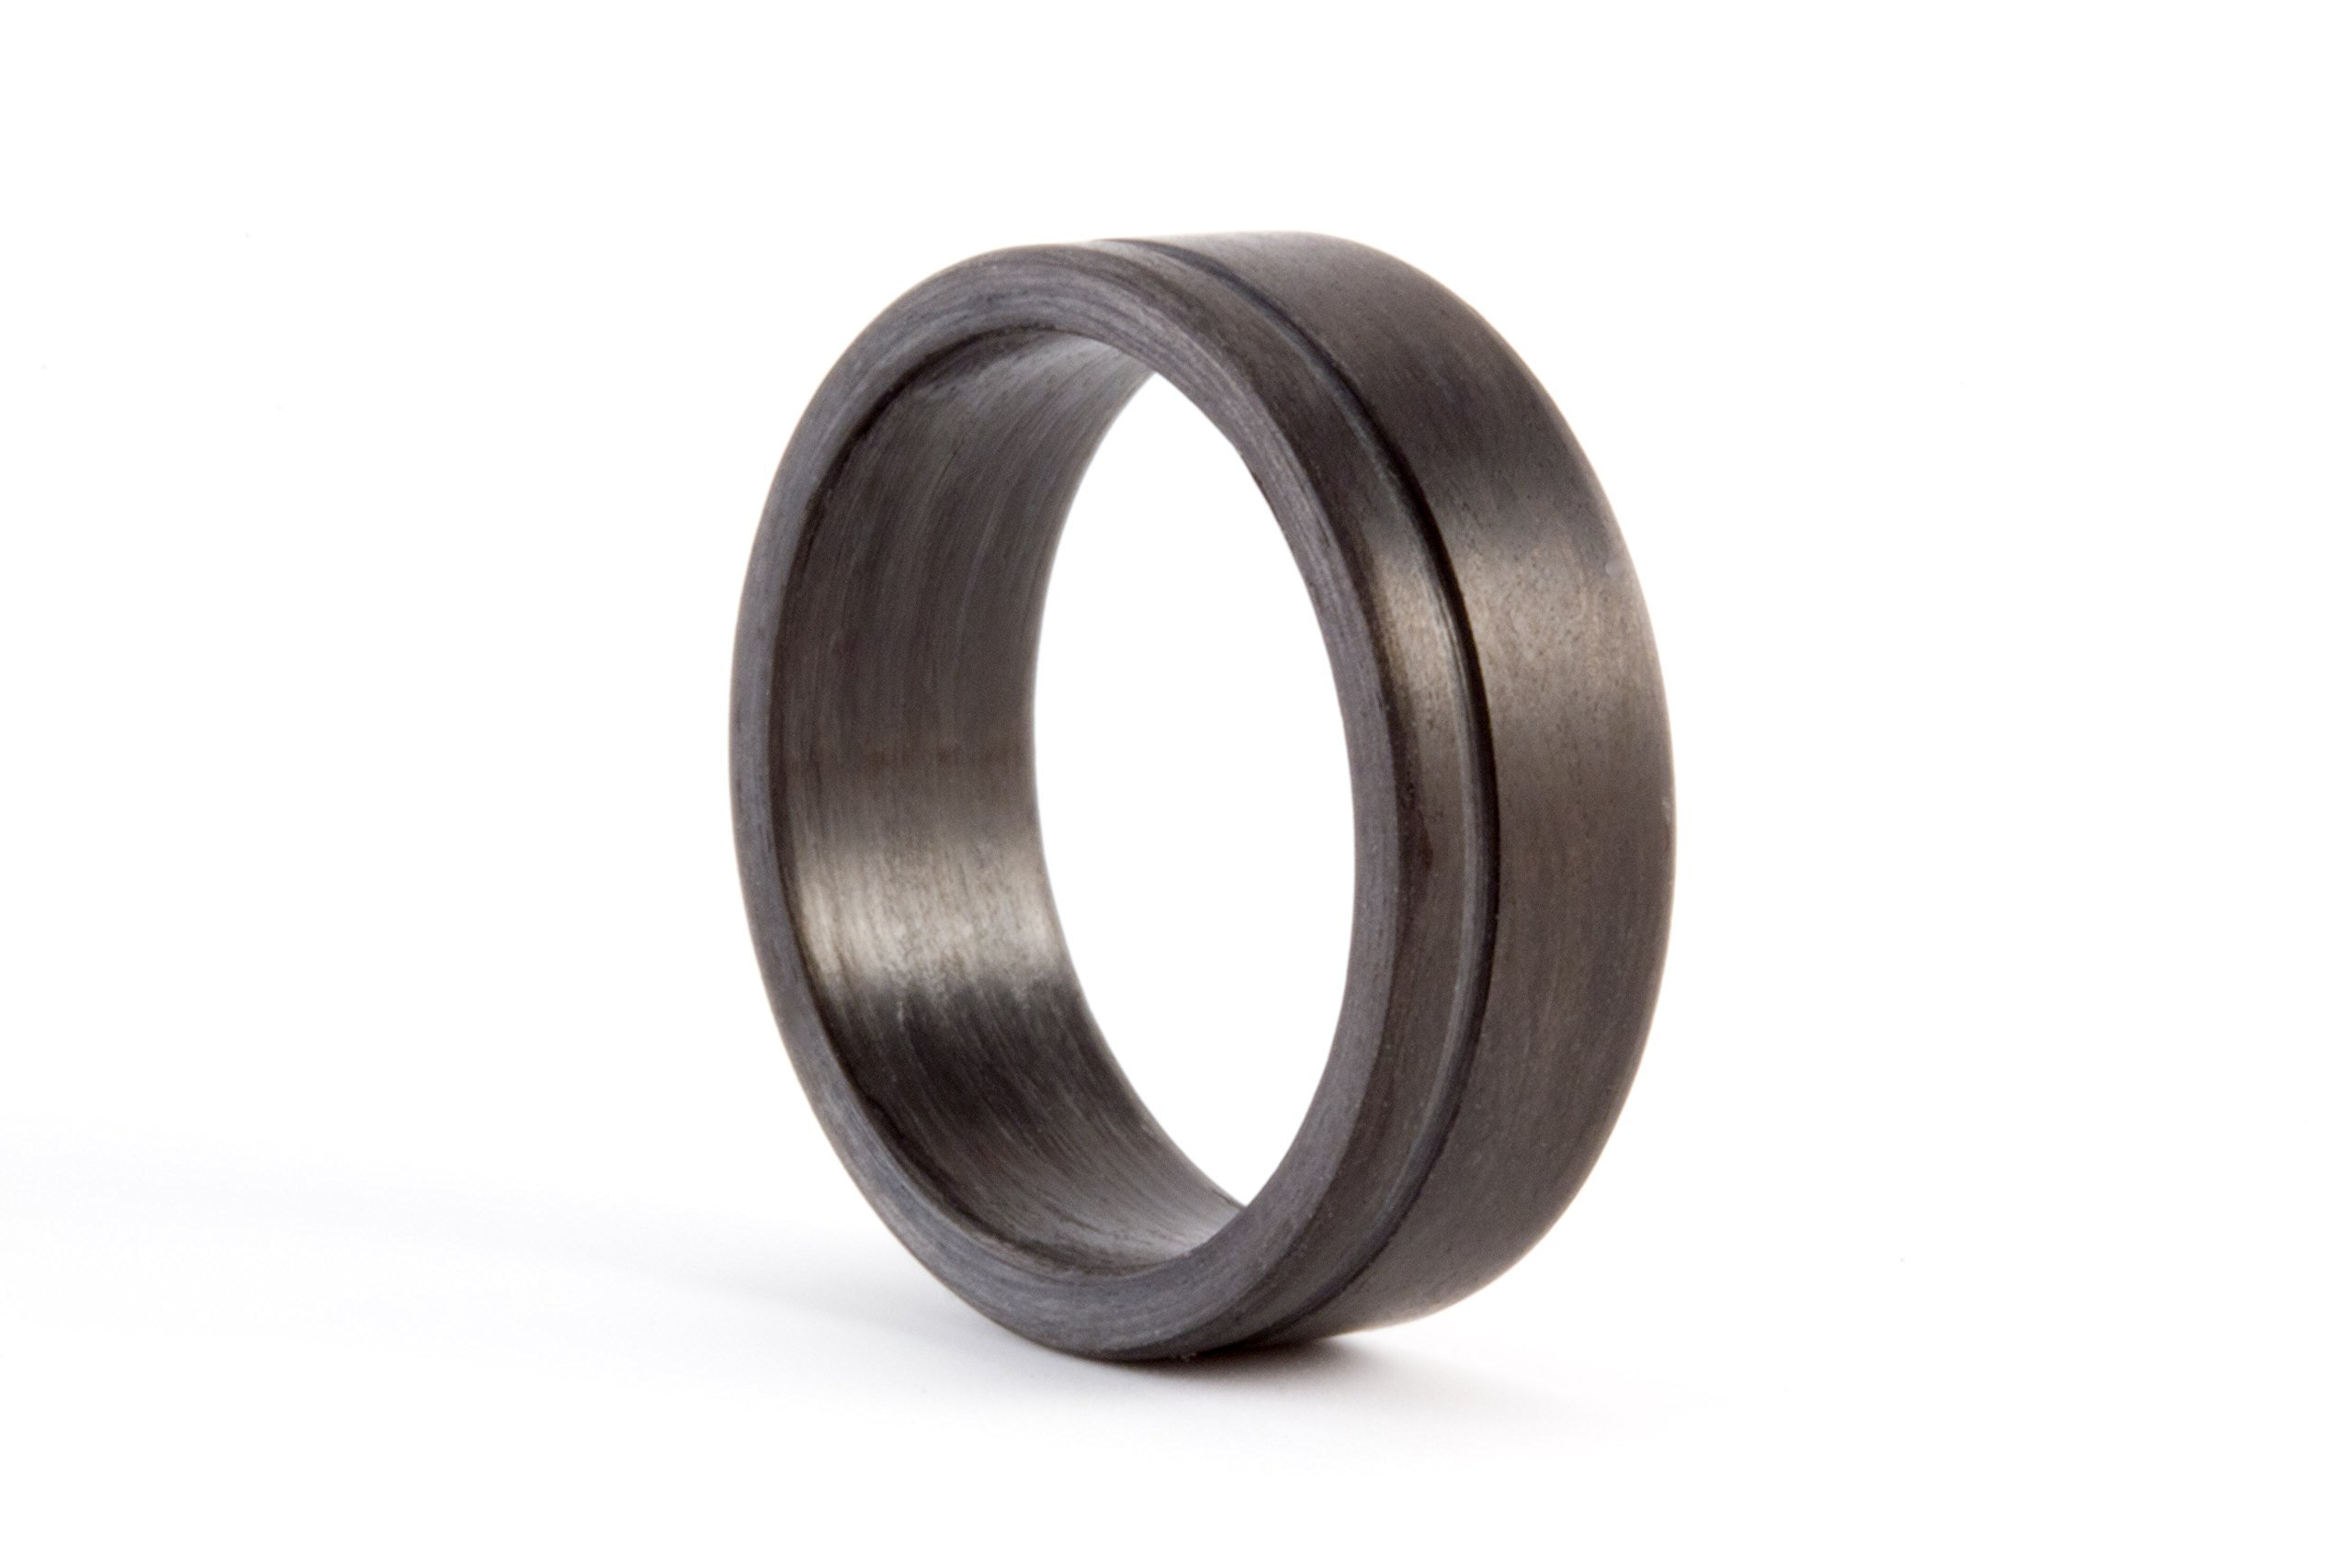 Men's carbon fiber flat ring. Unique and modern black wedding band. Water resistant, very durable and hypoallergenic. (00109_7N)